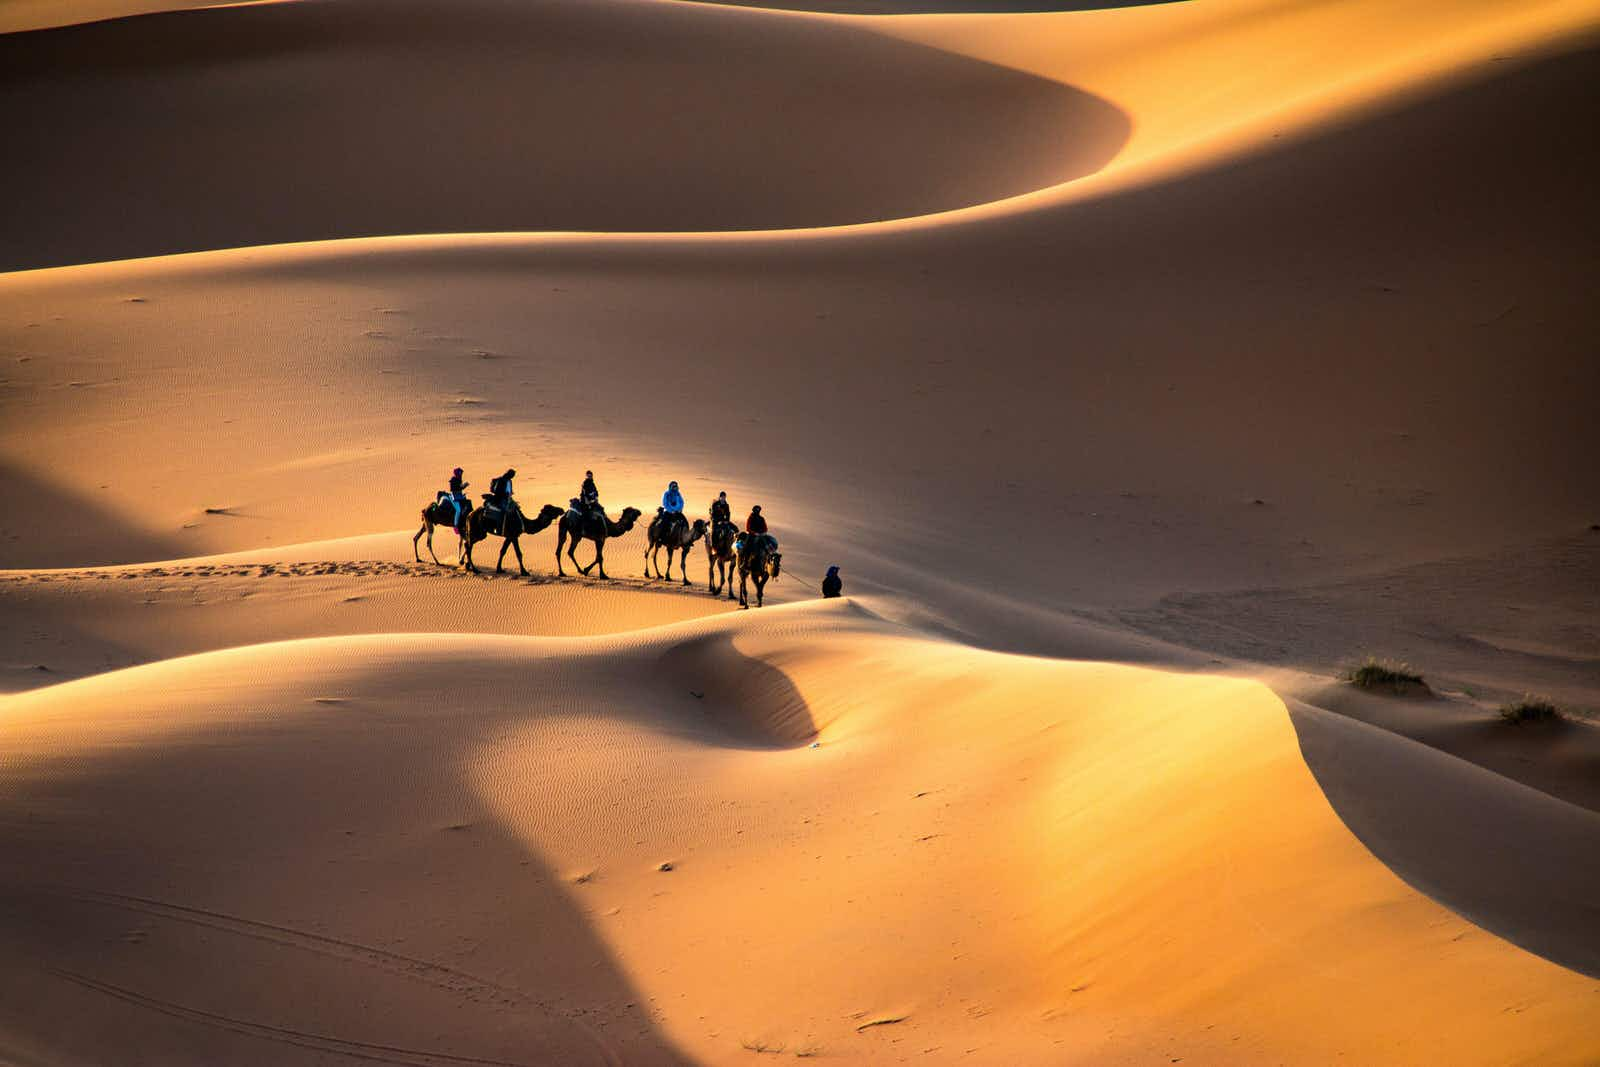 Desert of dreams: how and where to experience the Sahara